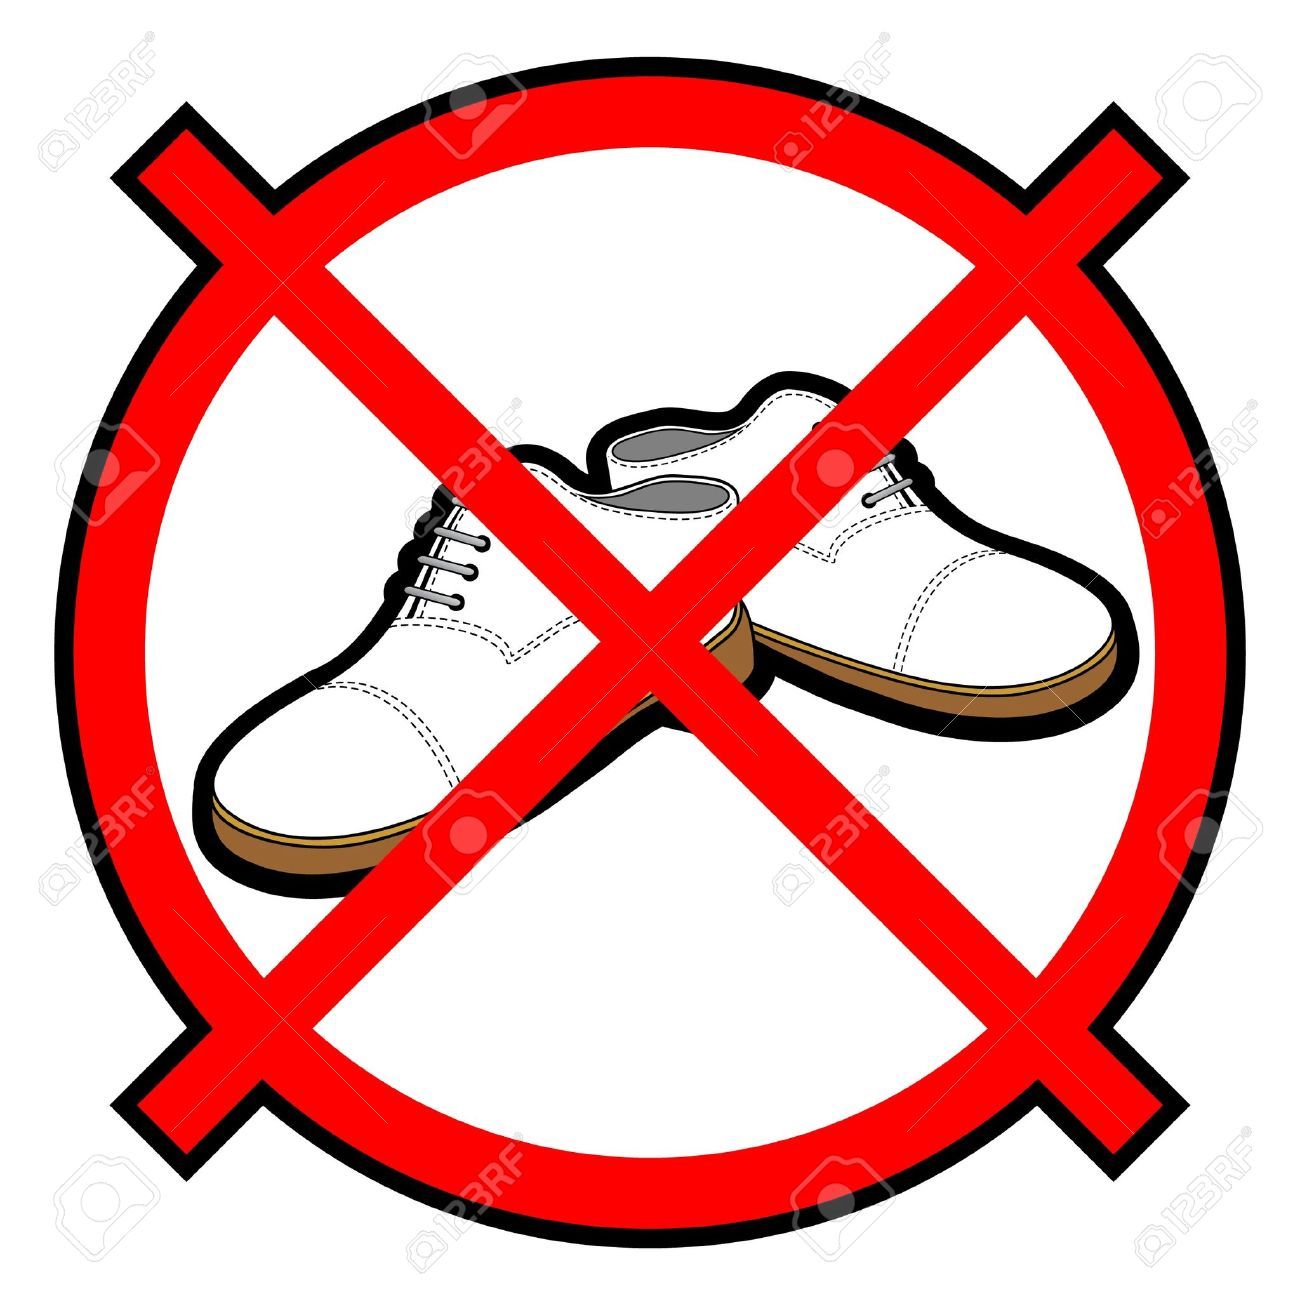 No shoes allowed clipart 7 » Clipart Station.